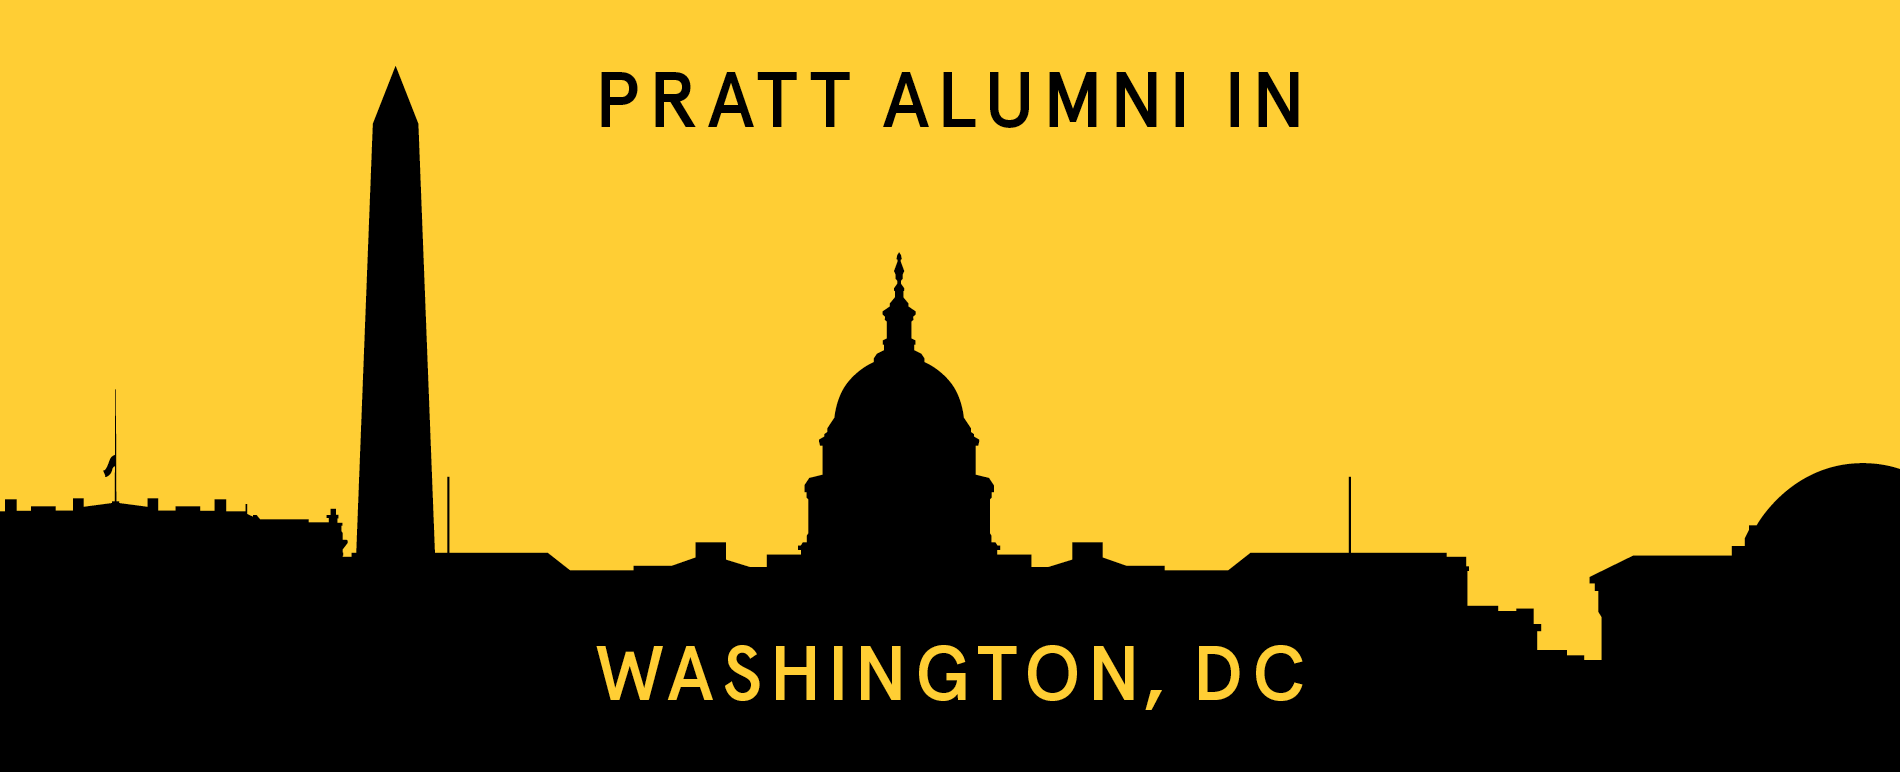 Pratt Alumni in Washington DC